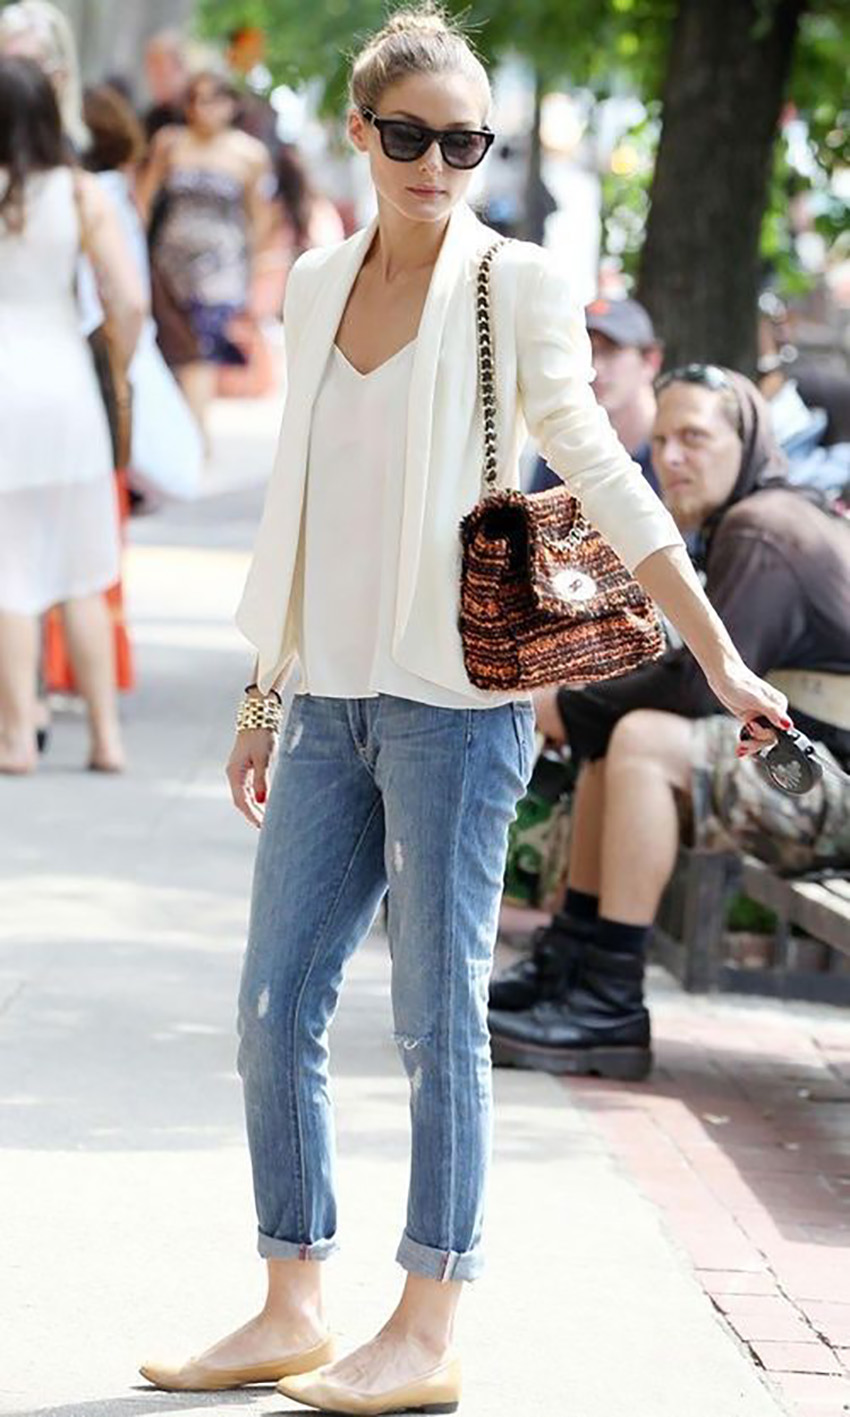 olivia_palermo_giacca_bianca_look_estate